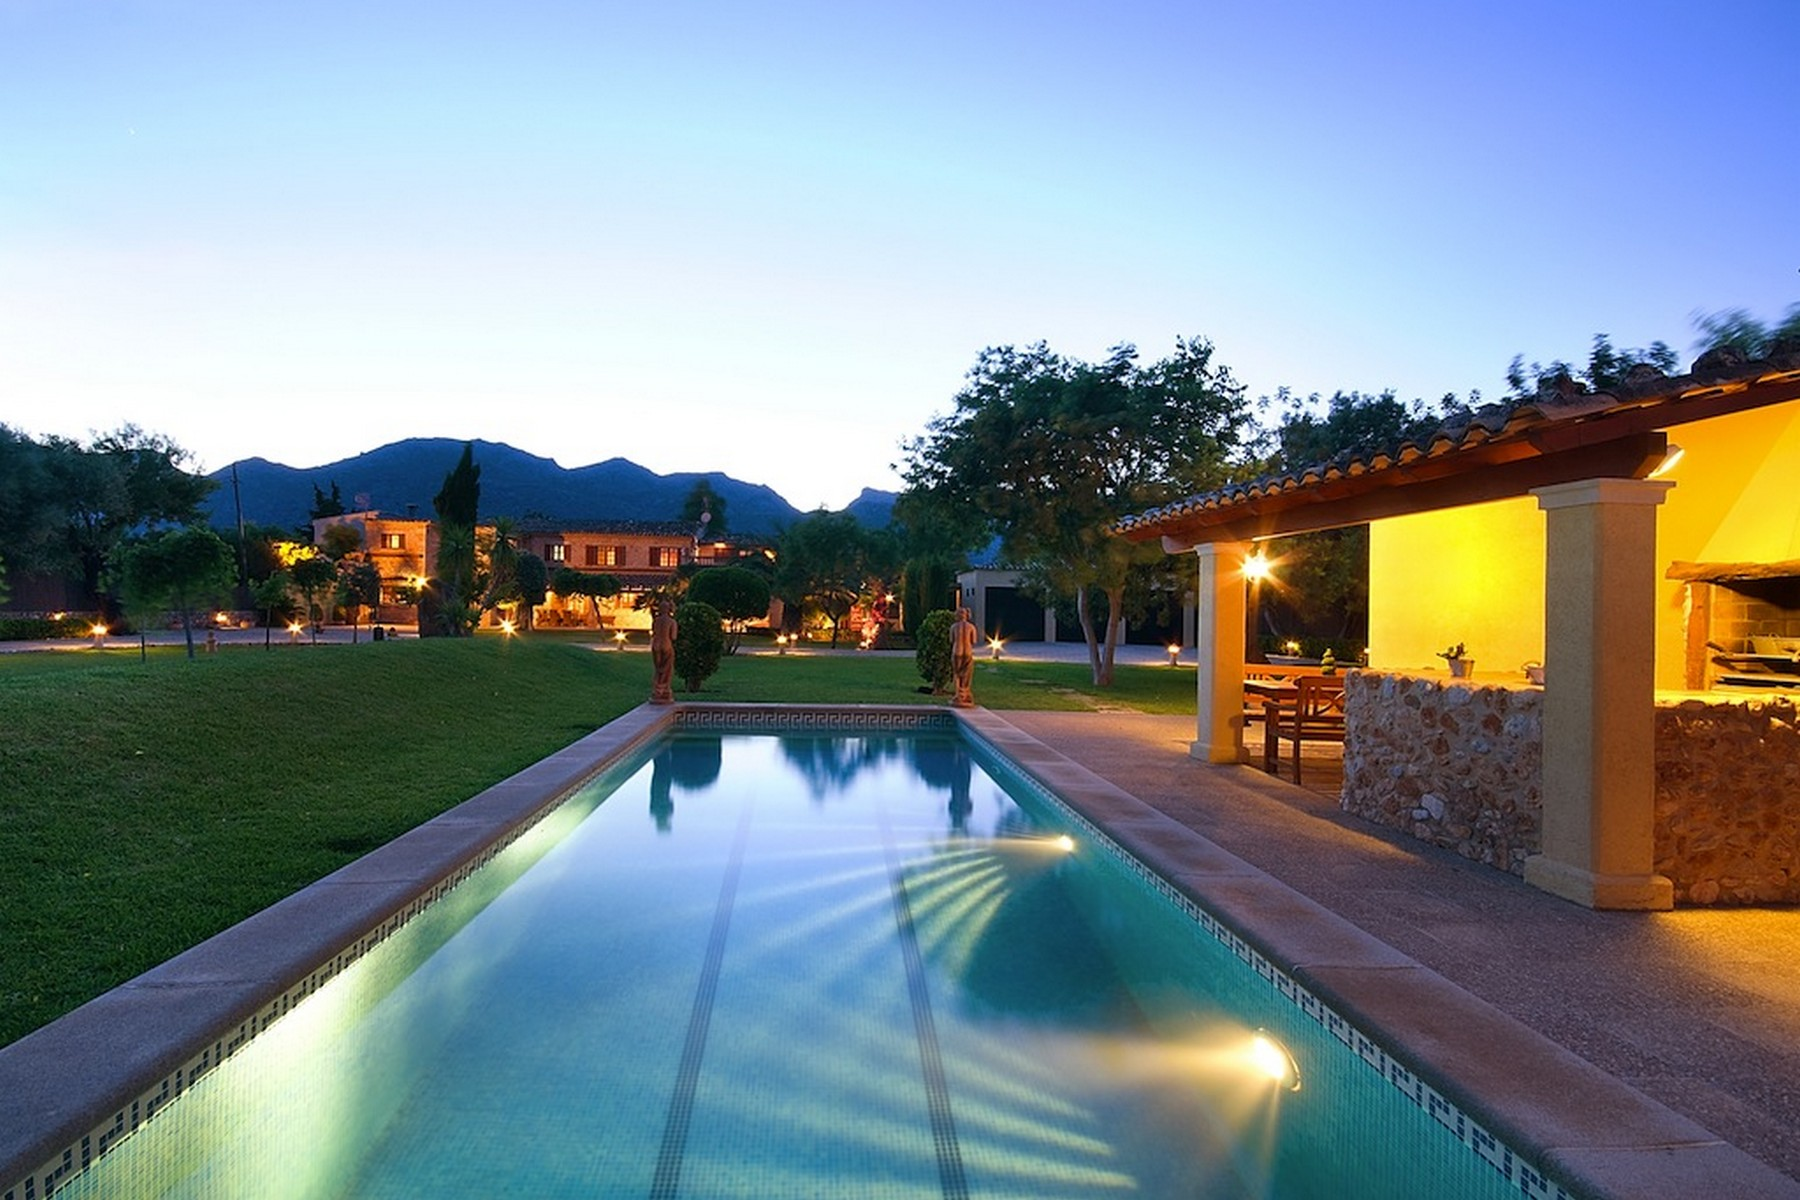 Single Family Home for Sale at Majorcan villa in Pollensa Pollensa, Mallorca 07157 Spain